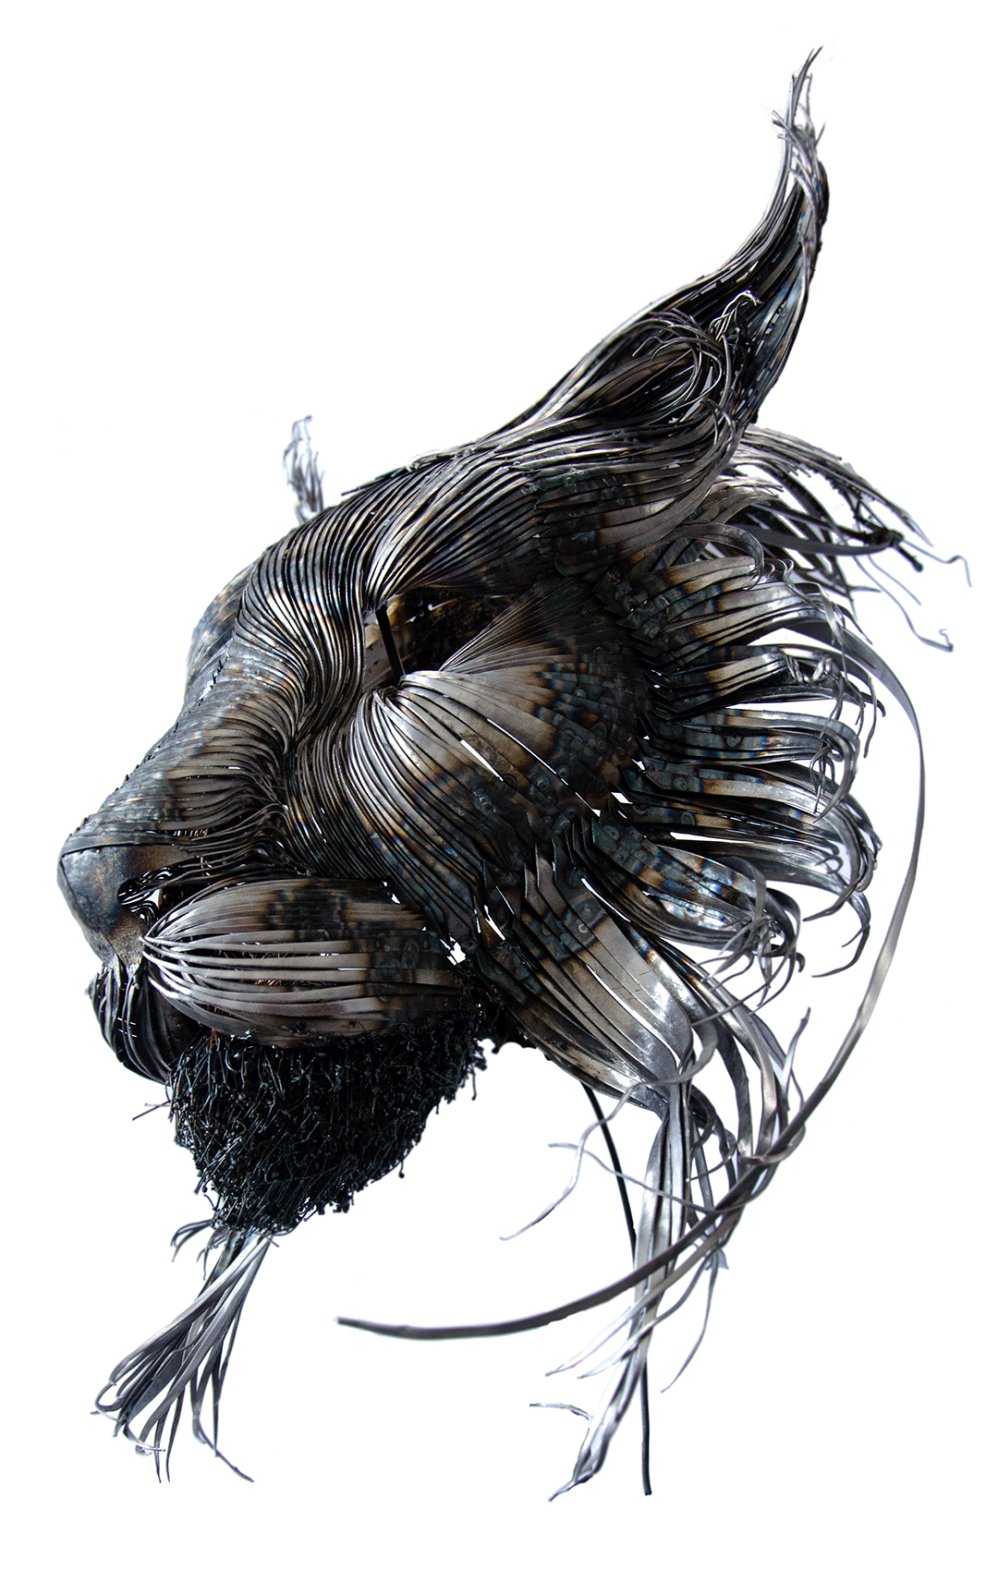 Selçuk Yılmaz_Animal Steel Sculpture_Lynx-16d4d